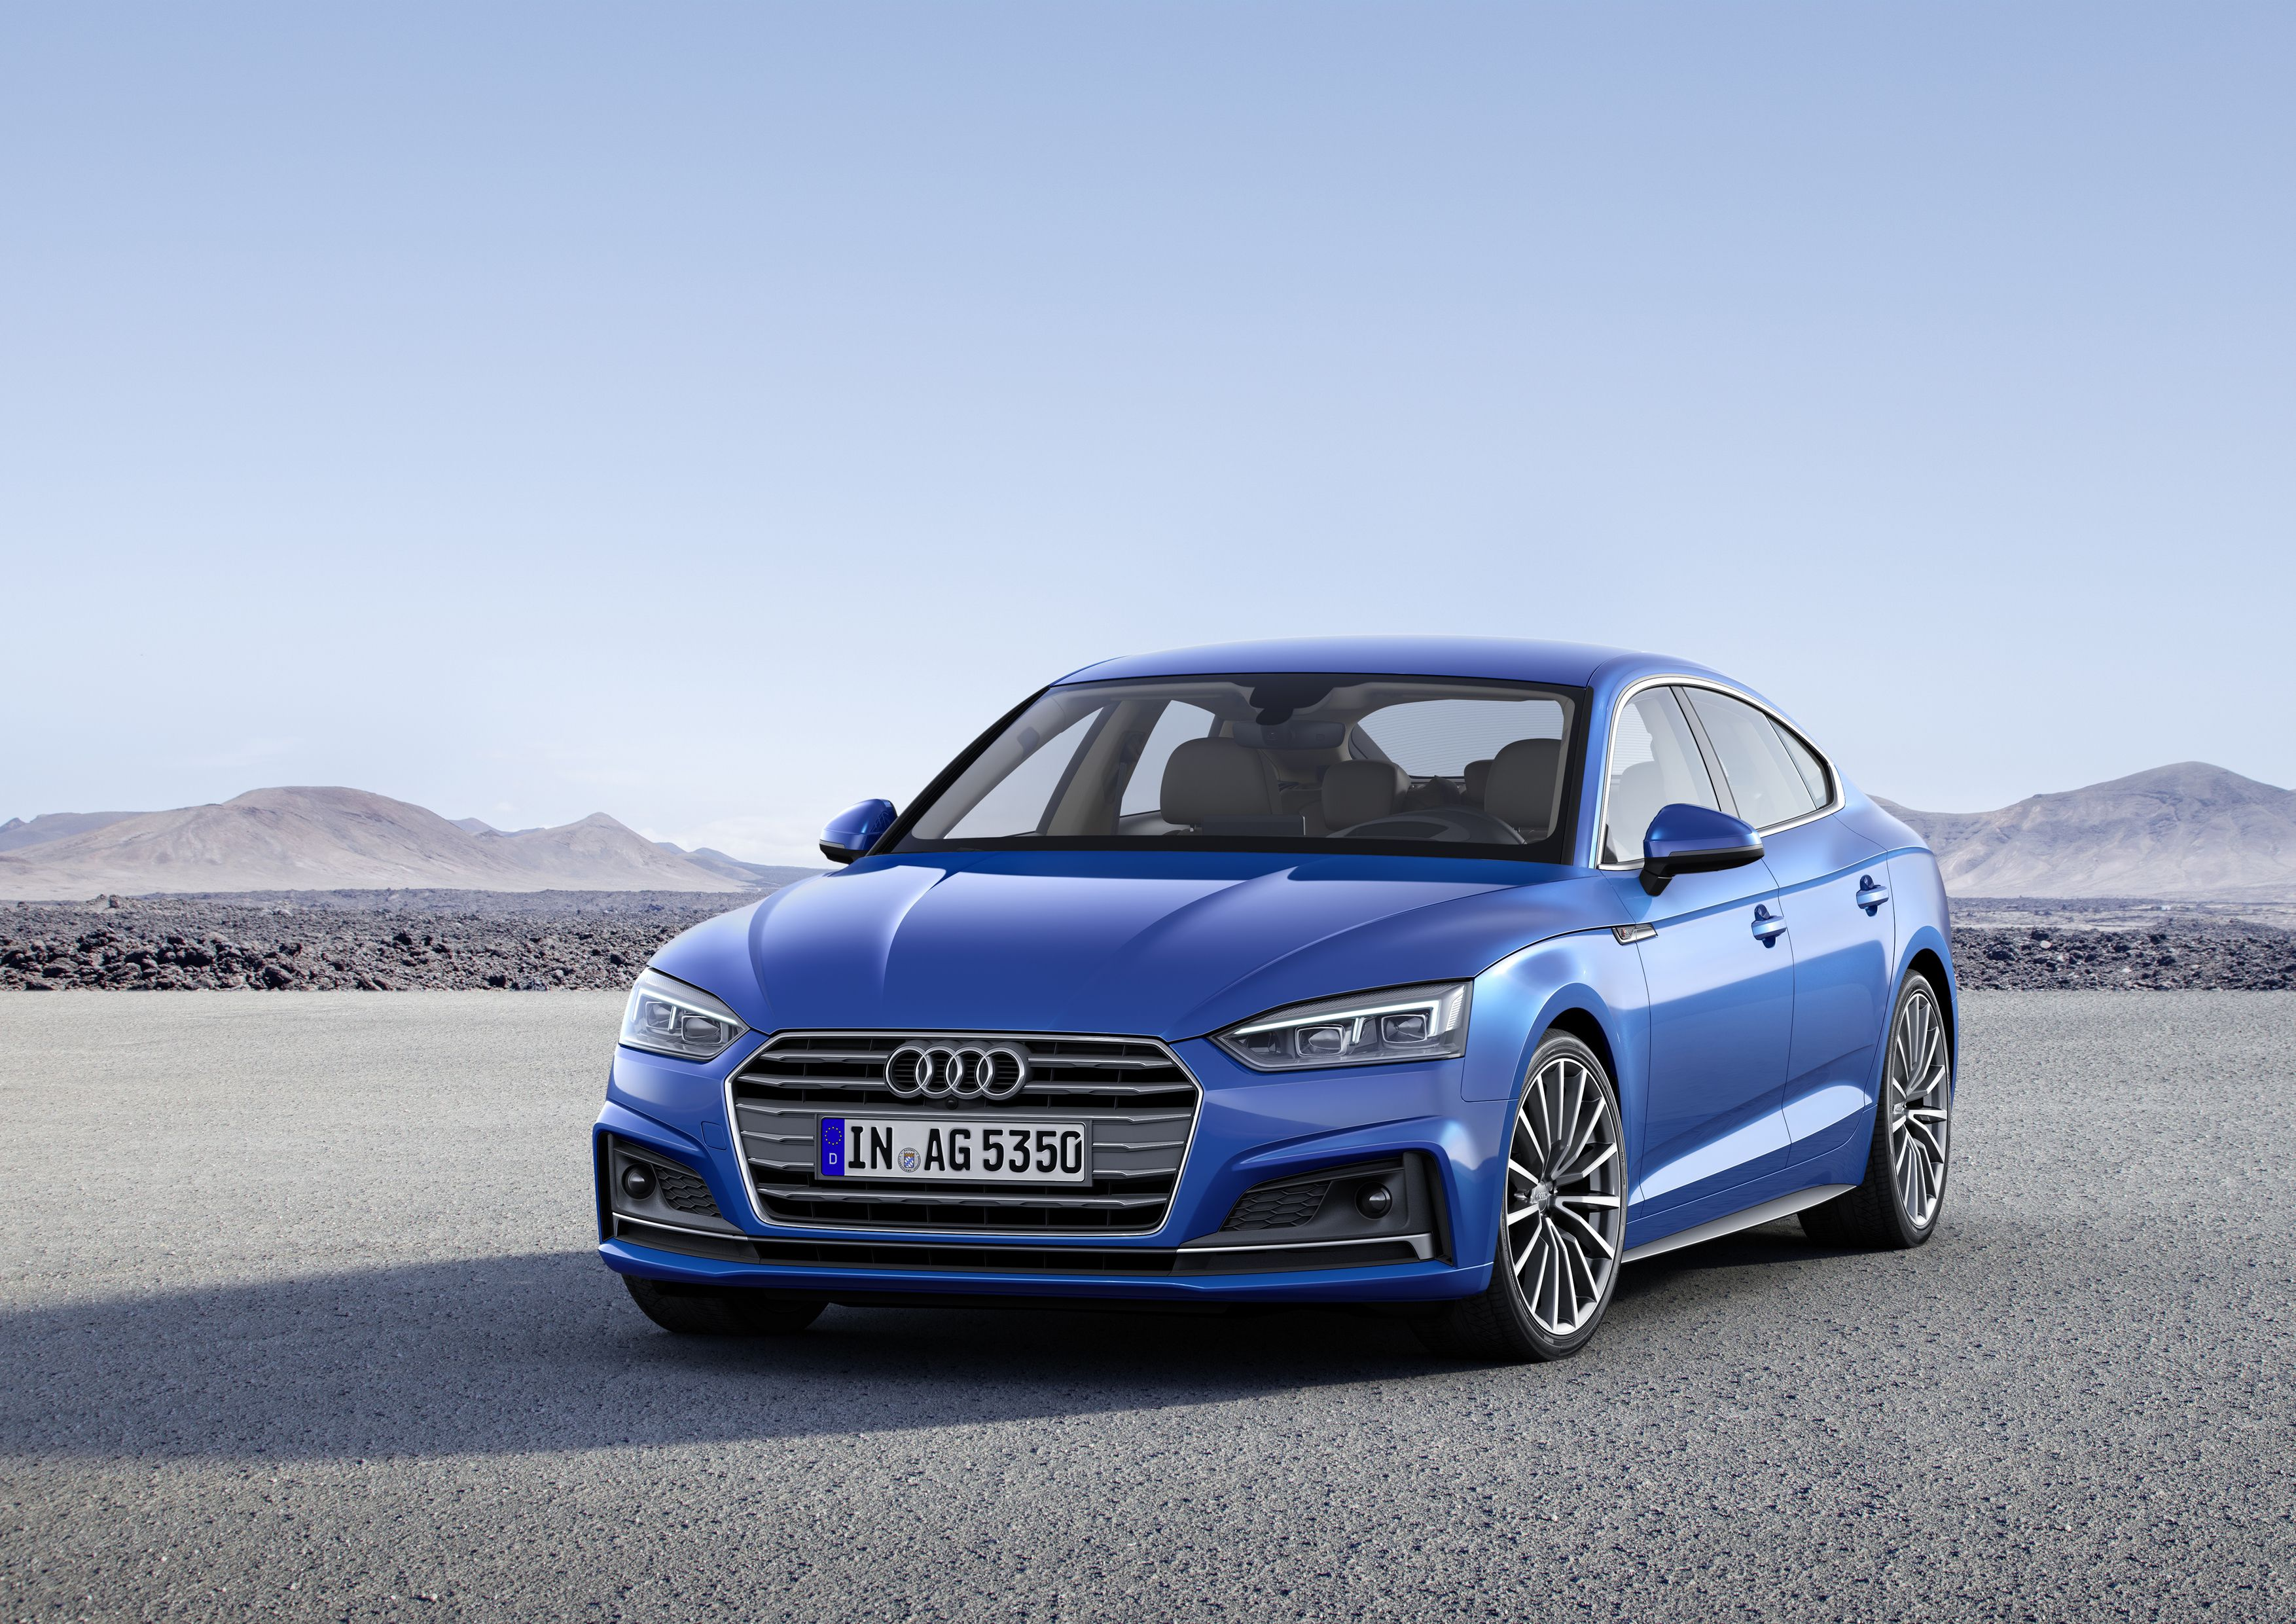 Audi Working With French Biofuel Company To Make Fuel From Beets Http